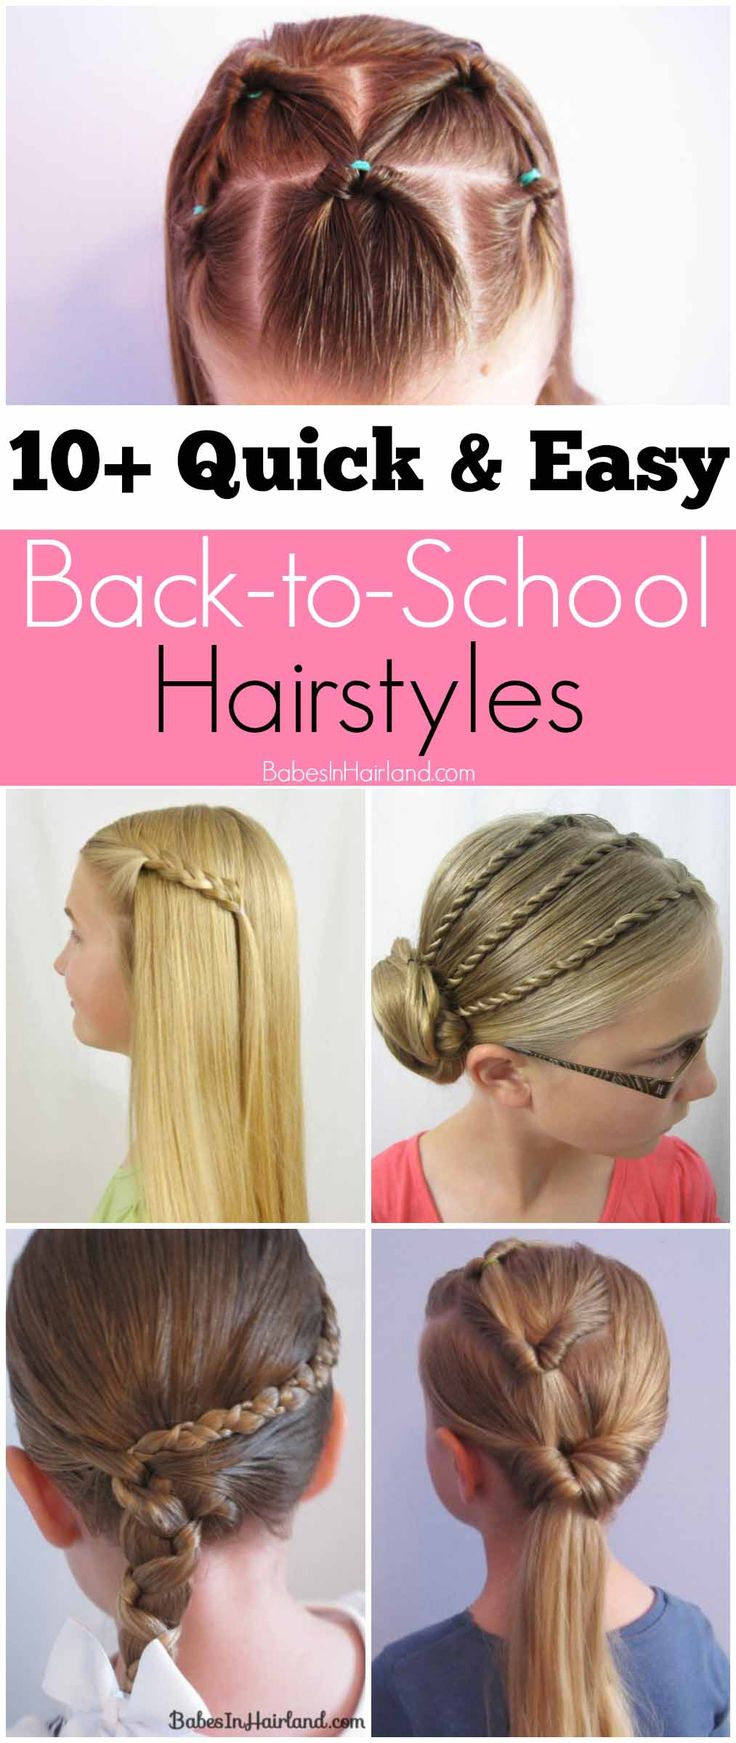 easy quick hair styles 1000 ideas about easy school hairstyles on 8613 | 1b53a952fb6e8a30ad6775e18a6b0267